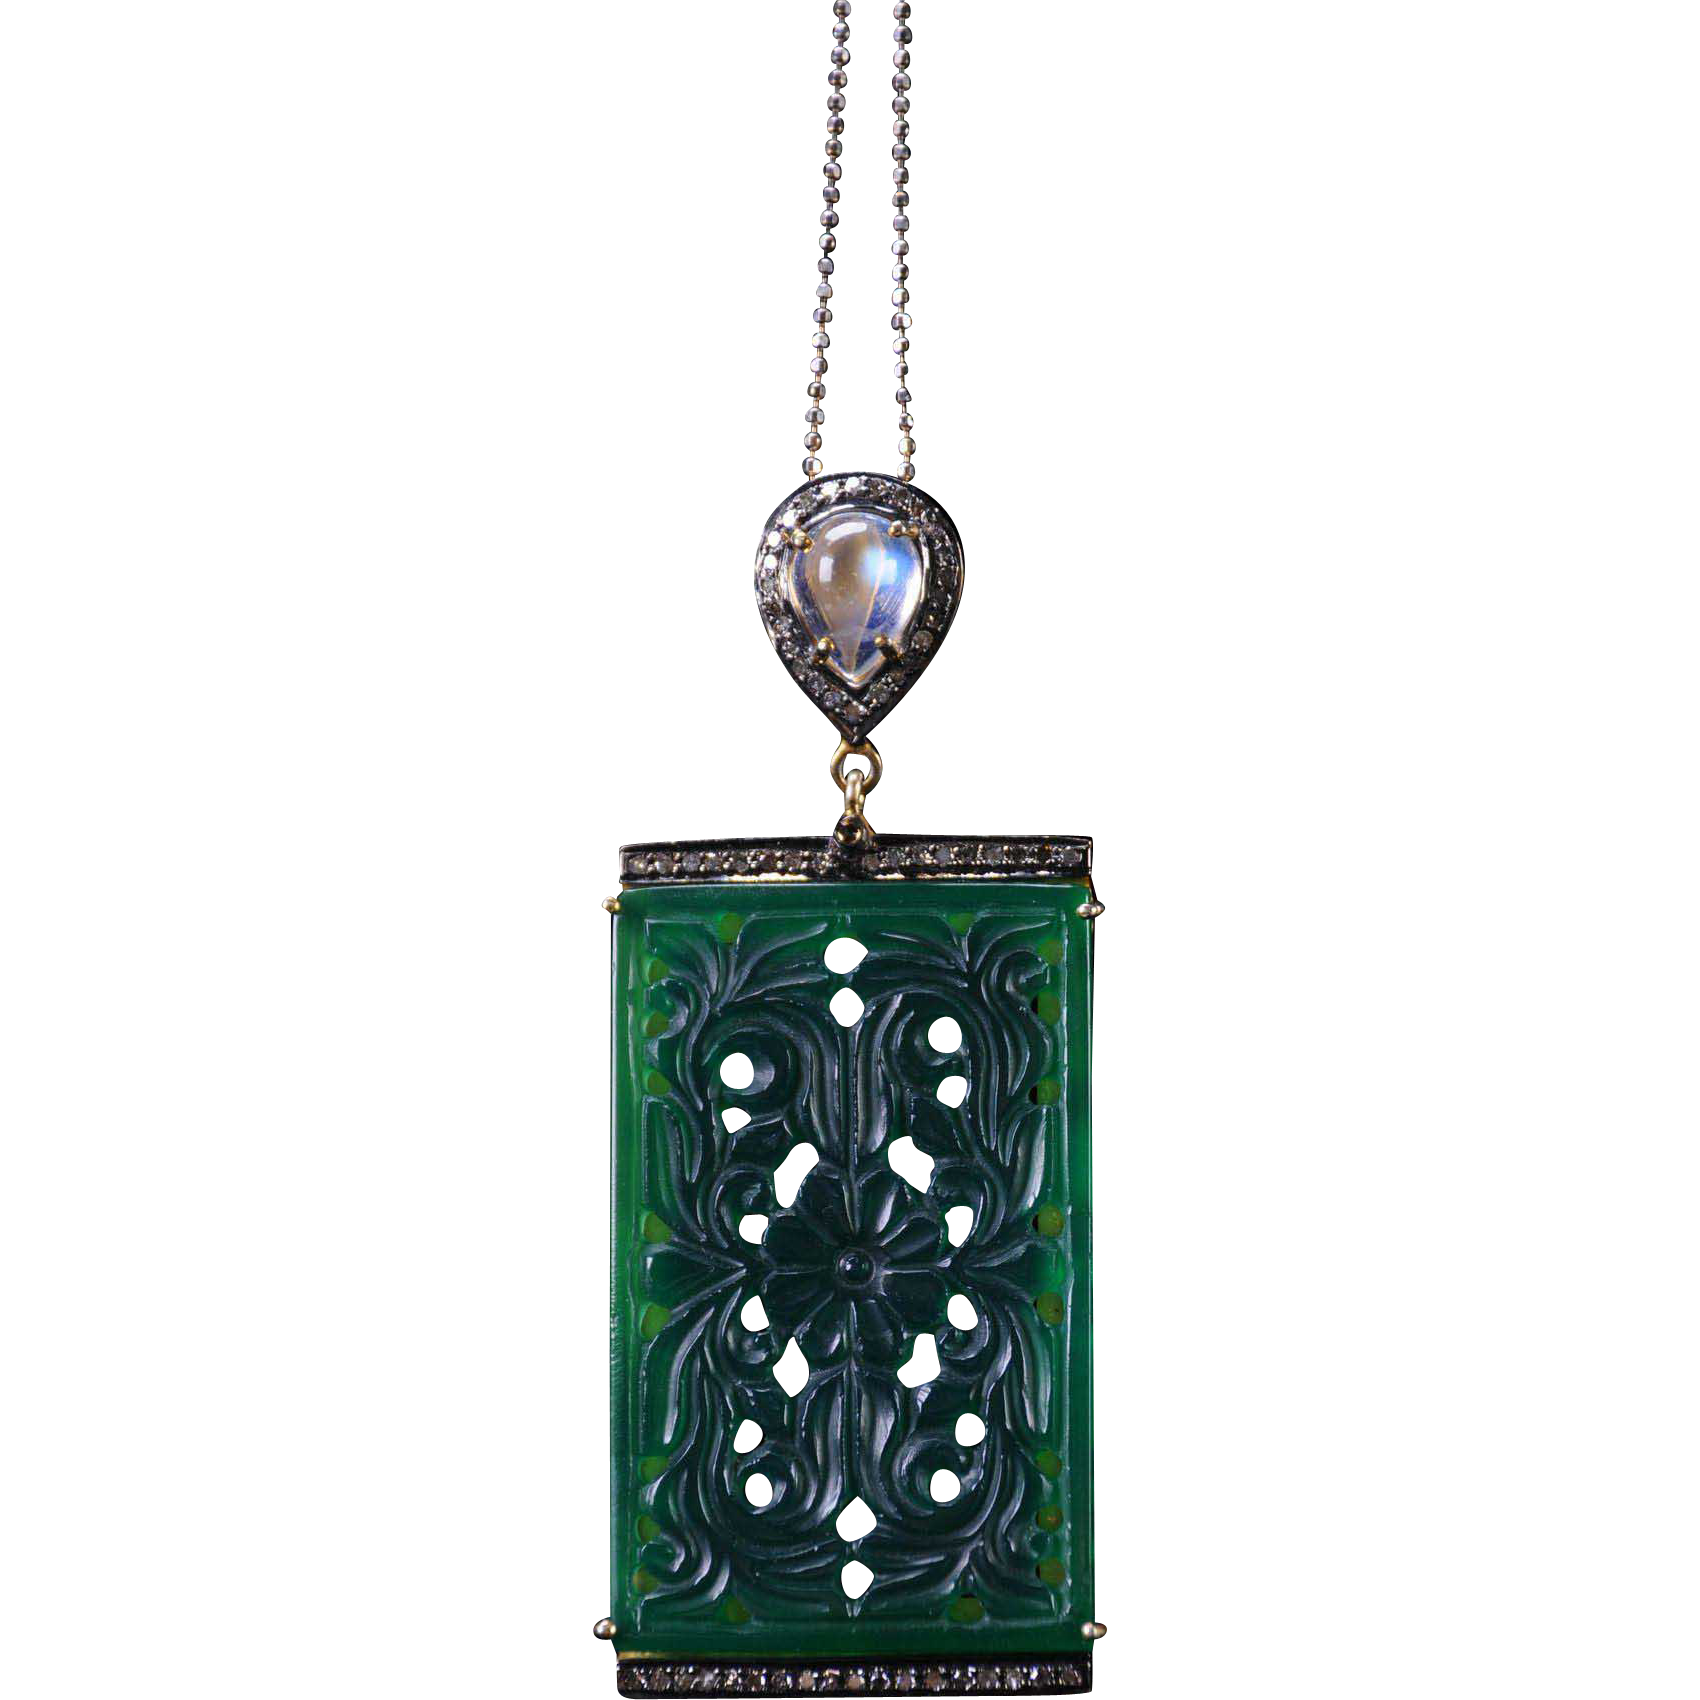 Unique Carved Green Onyx Pendant with Moonstone and Diamonds